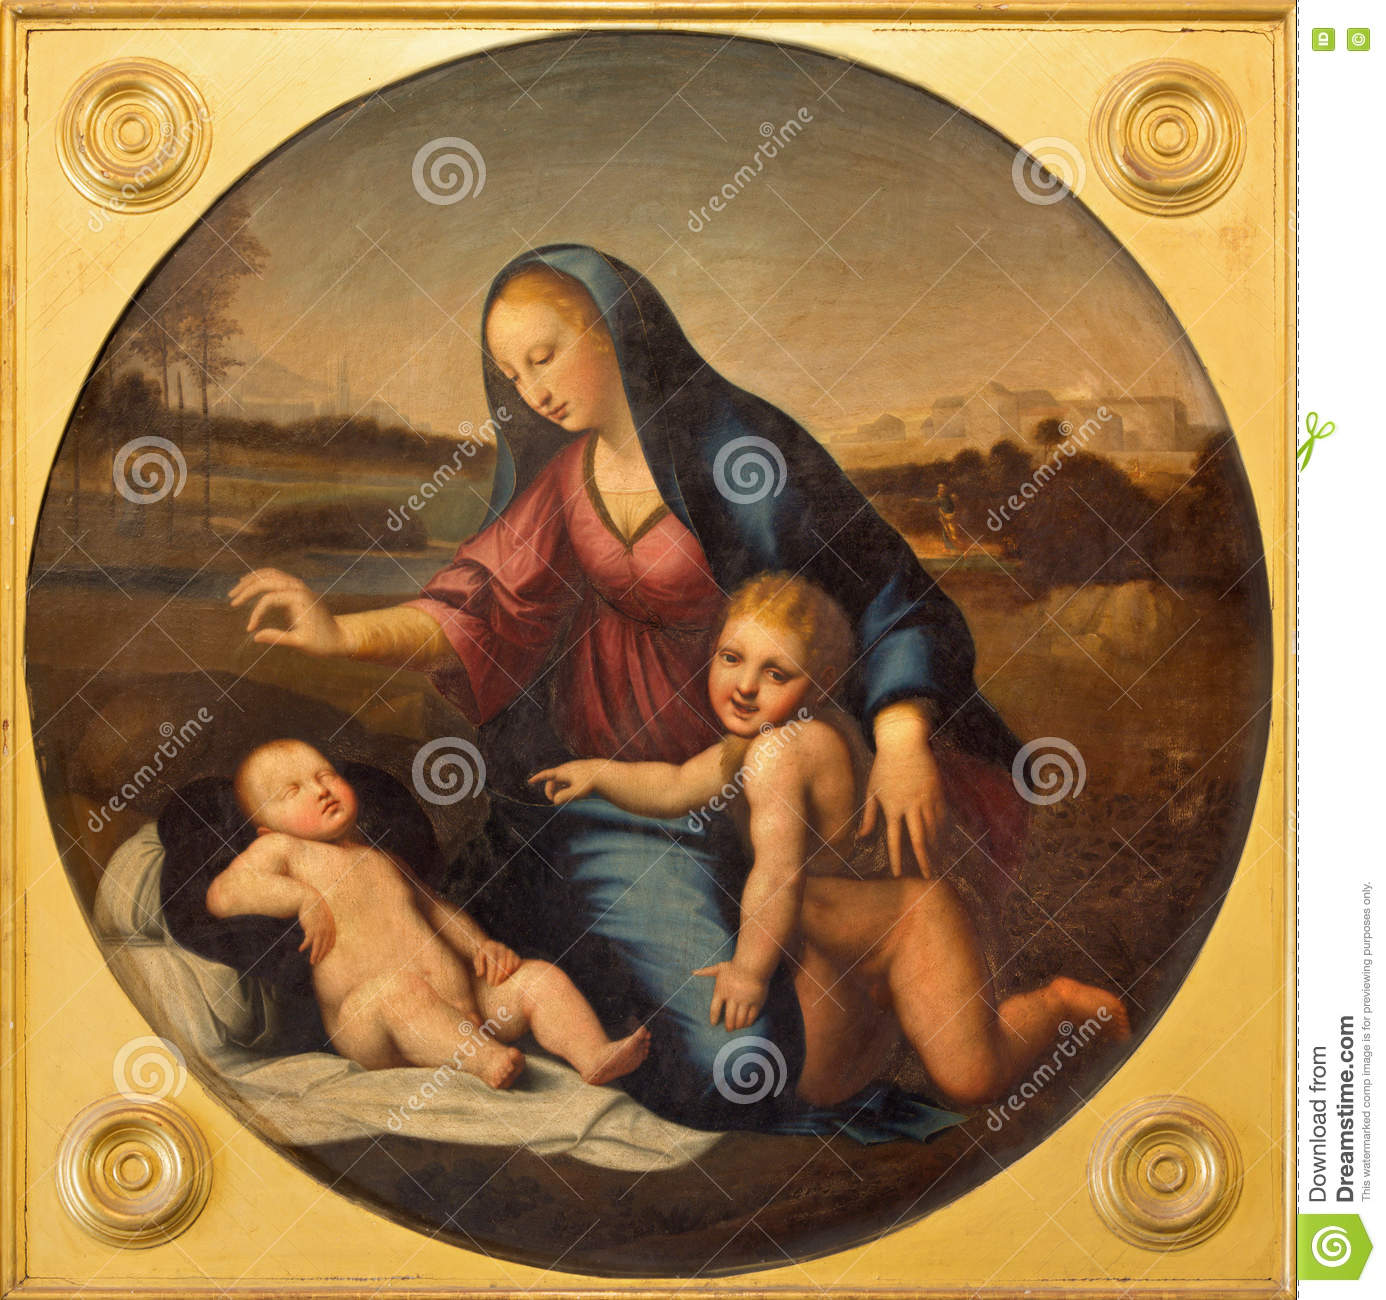 Salamanca Spain April 18 2016 The Painting Of Madonna With The Child And St John The Baptist In Convento De Las Duanas Stock Photo Image Of Catedral Convento 79164358